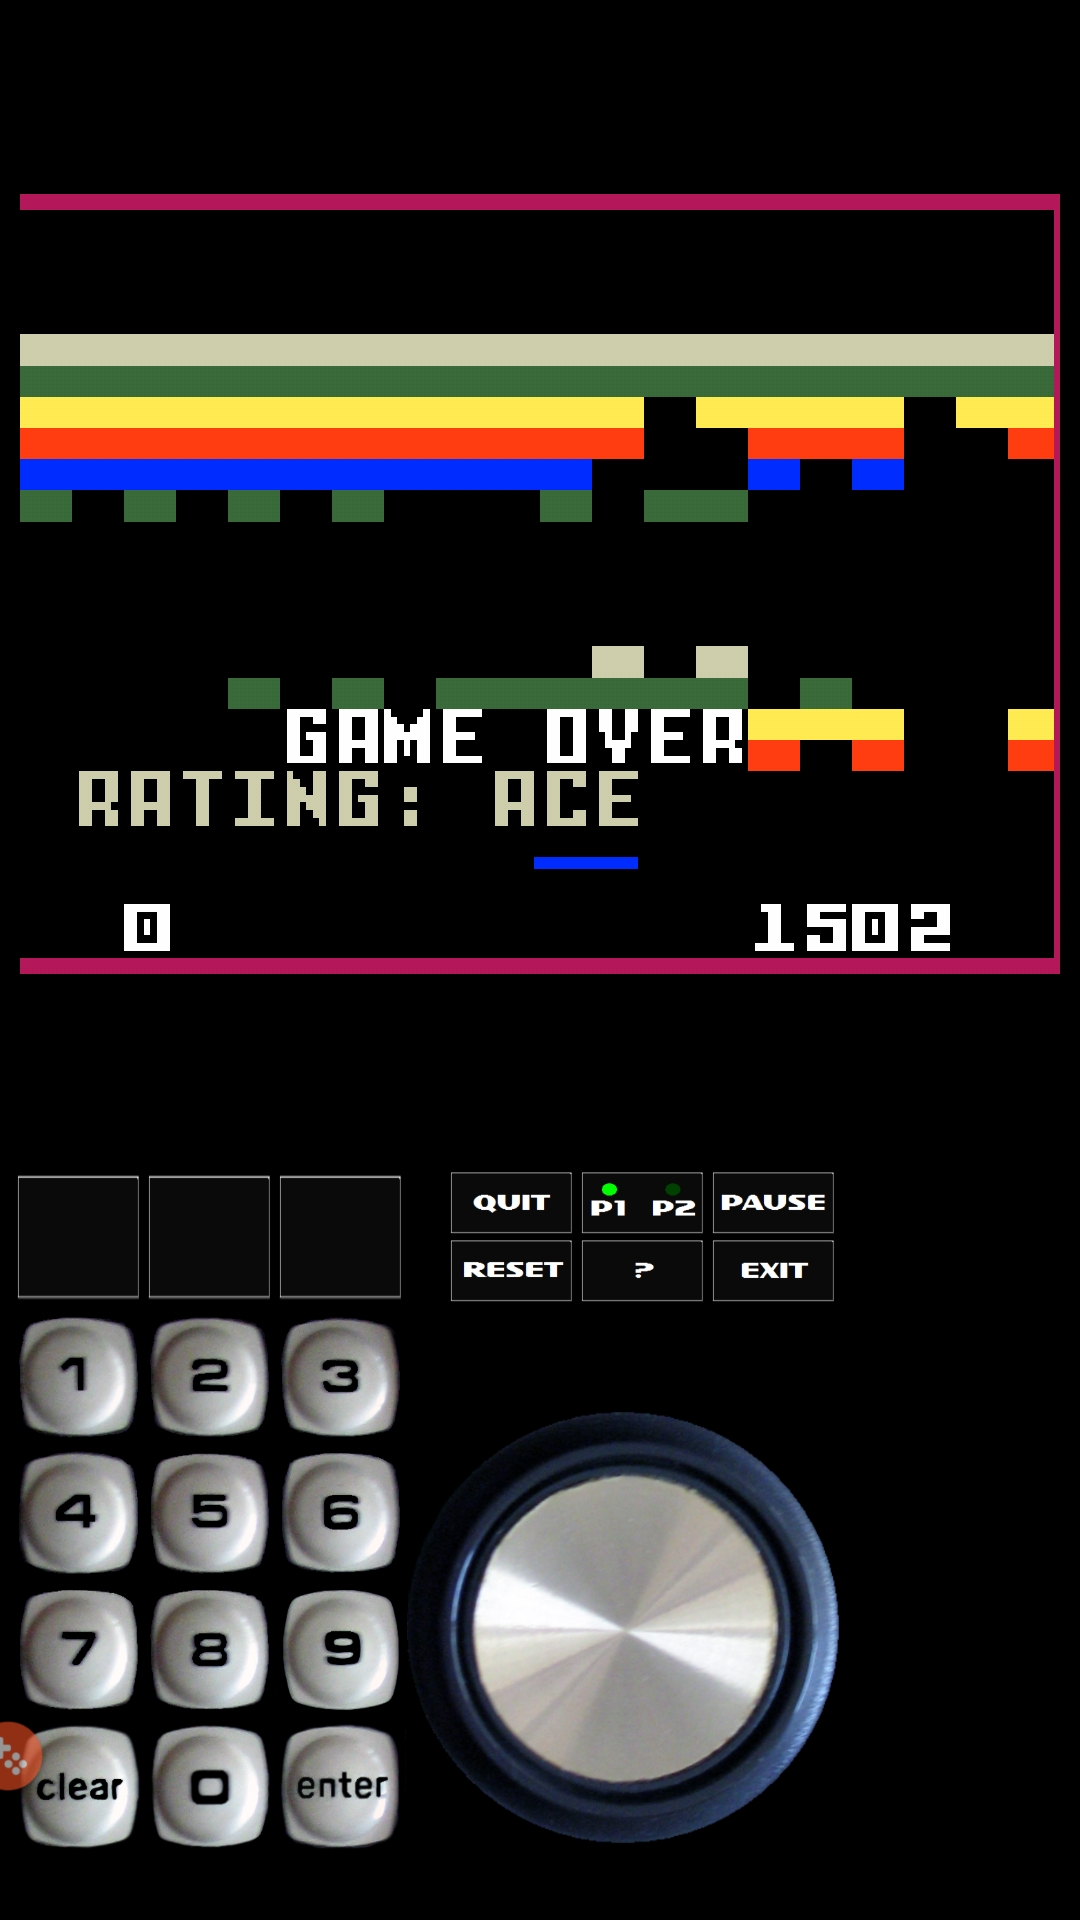 Bamse: Brickout (Intellivision Emulated) 1,502 points on 2019-02-16 07:15:25